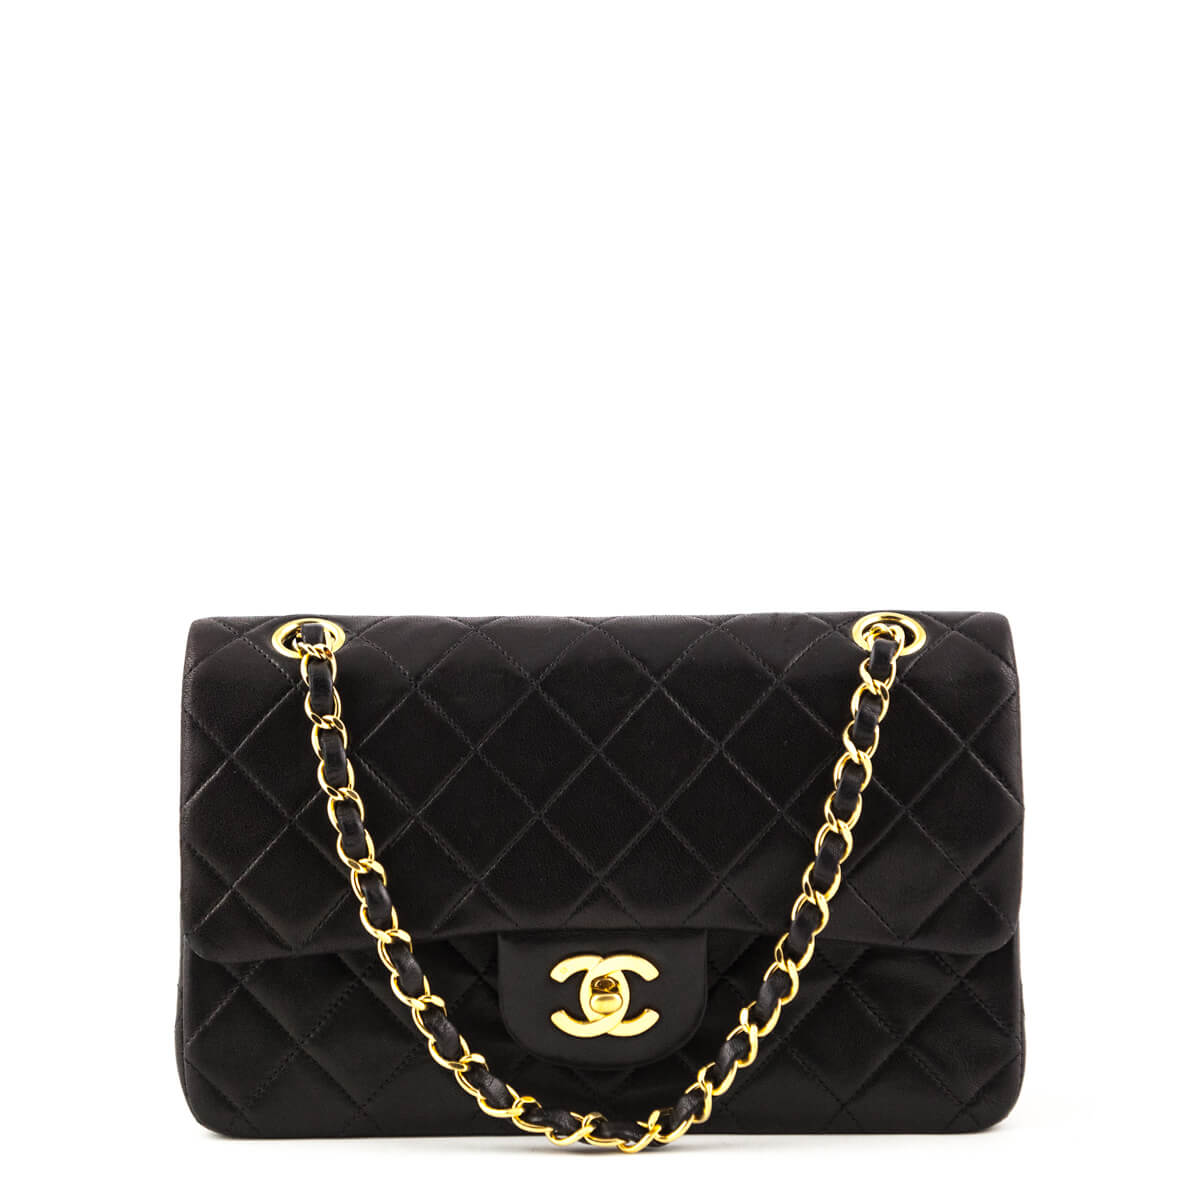 ad8fad4221a3 Chanel Black Lambskin Vintage Small Double Flap Bag GHW - LOVE that BAG -  Preowned Authentic ...